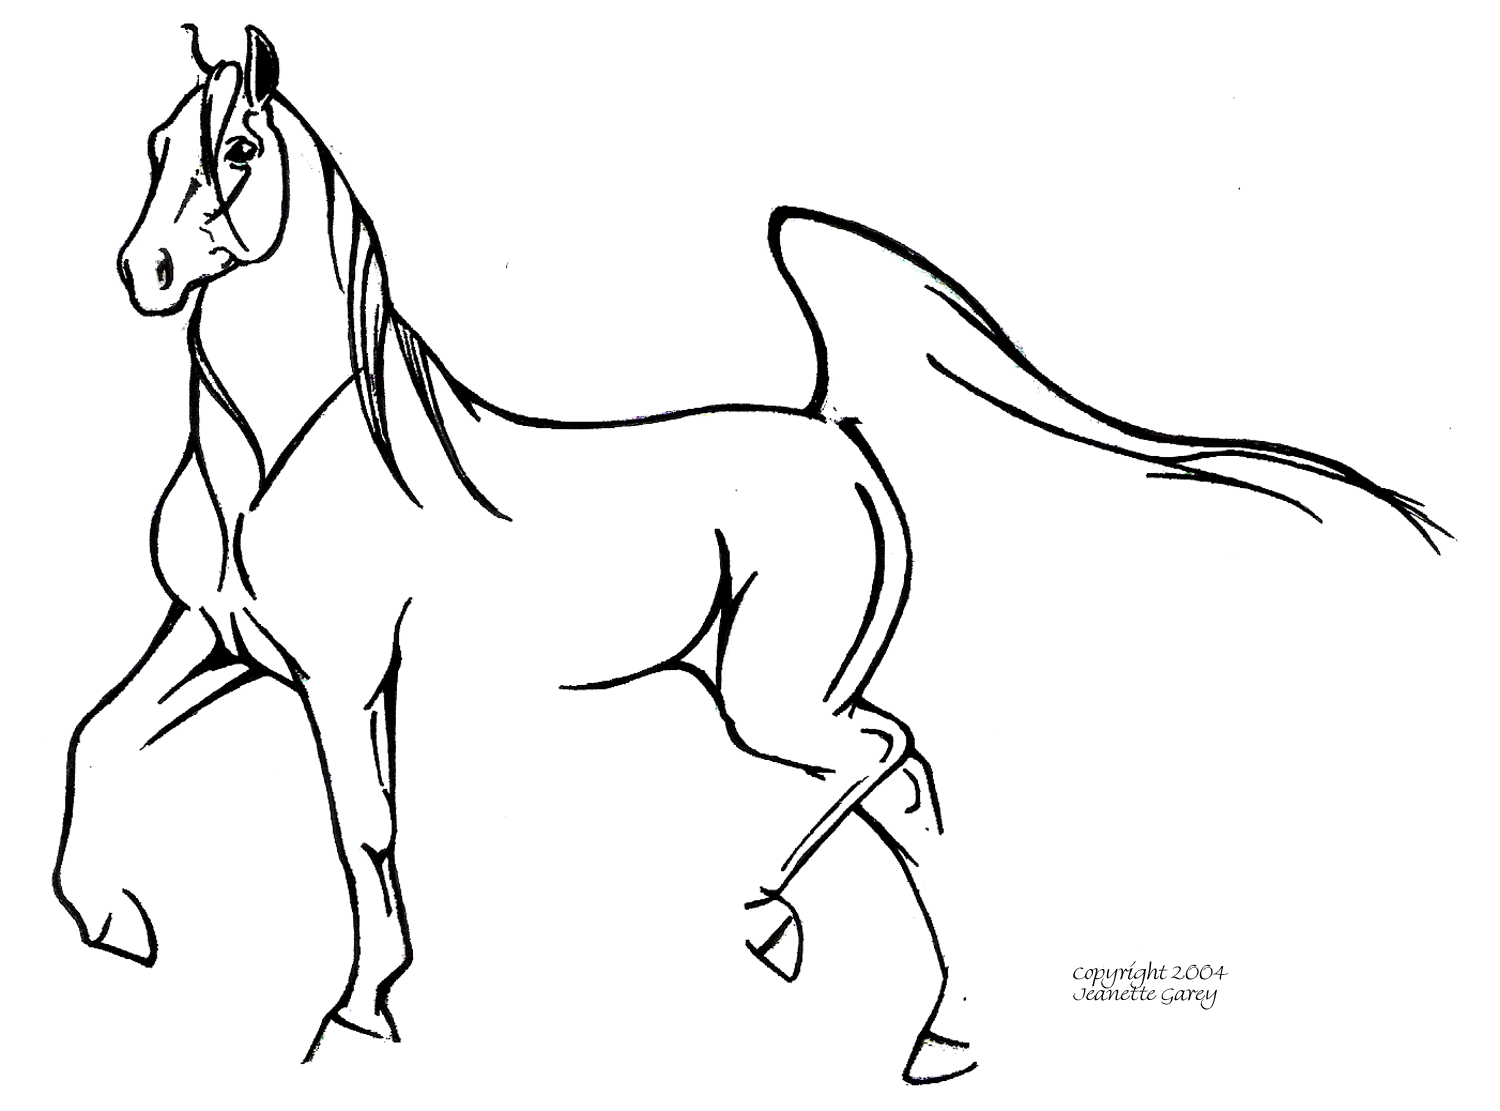 Running arabian horse drawing